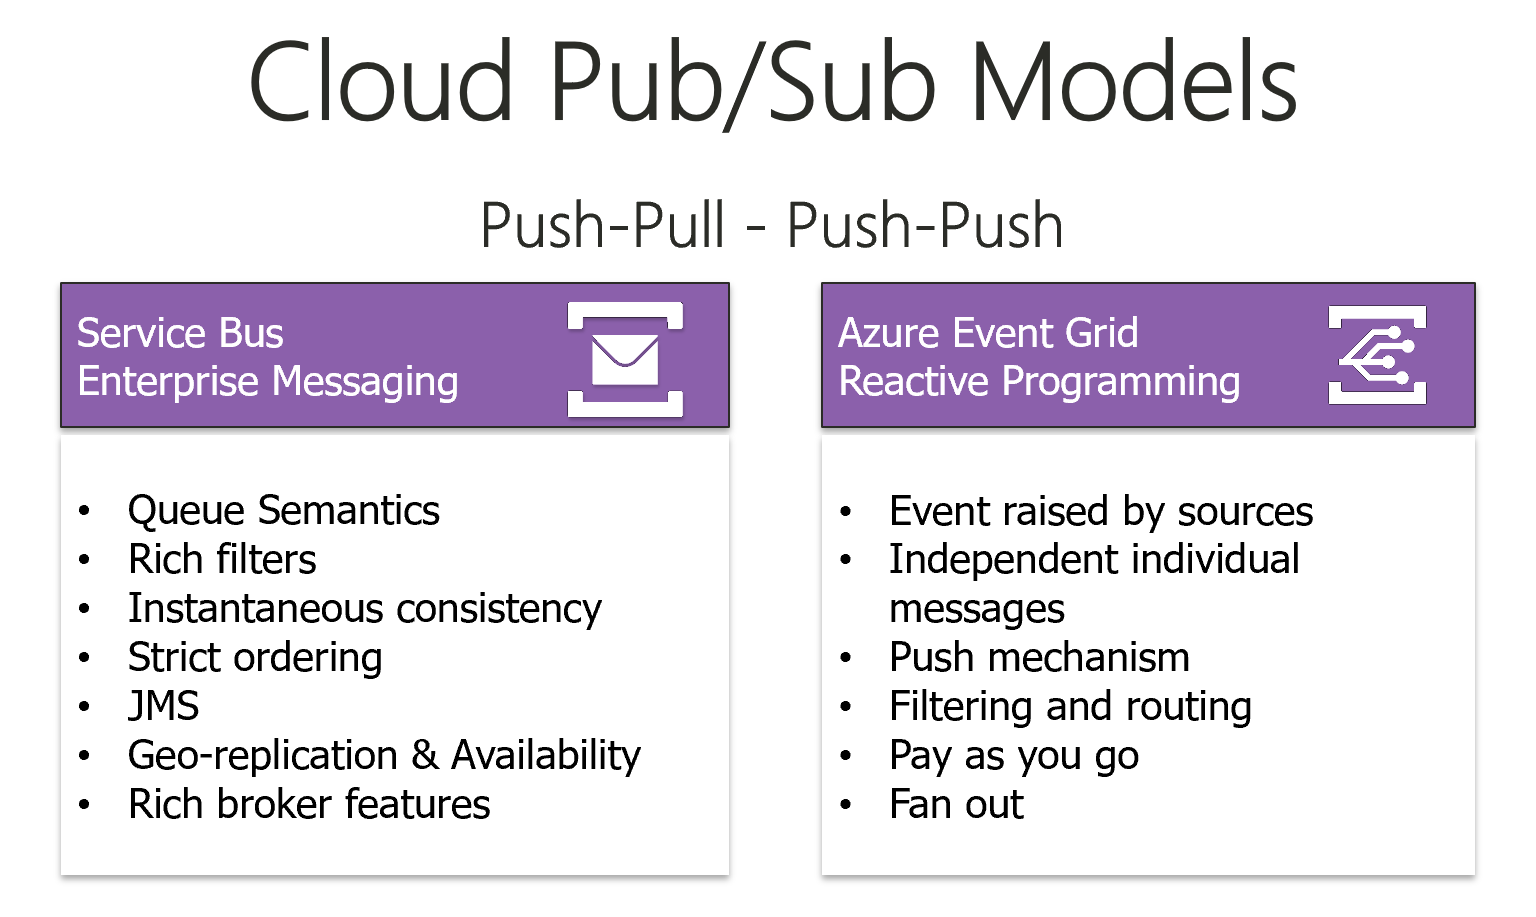 Azure Event Grid an Event Broker in the Cloud - Pic 2